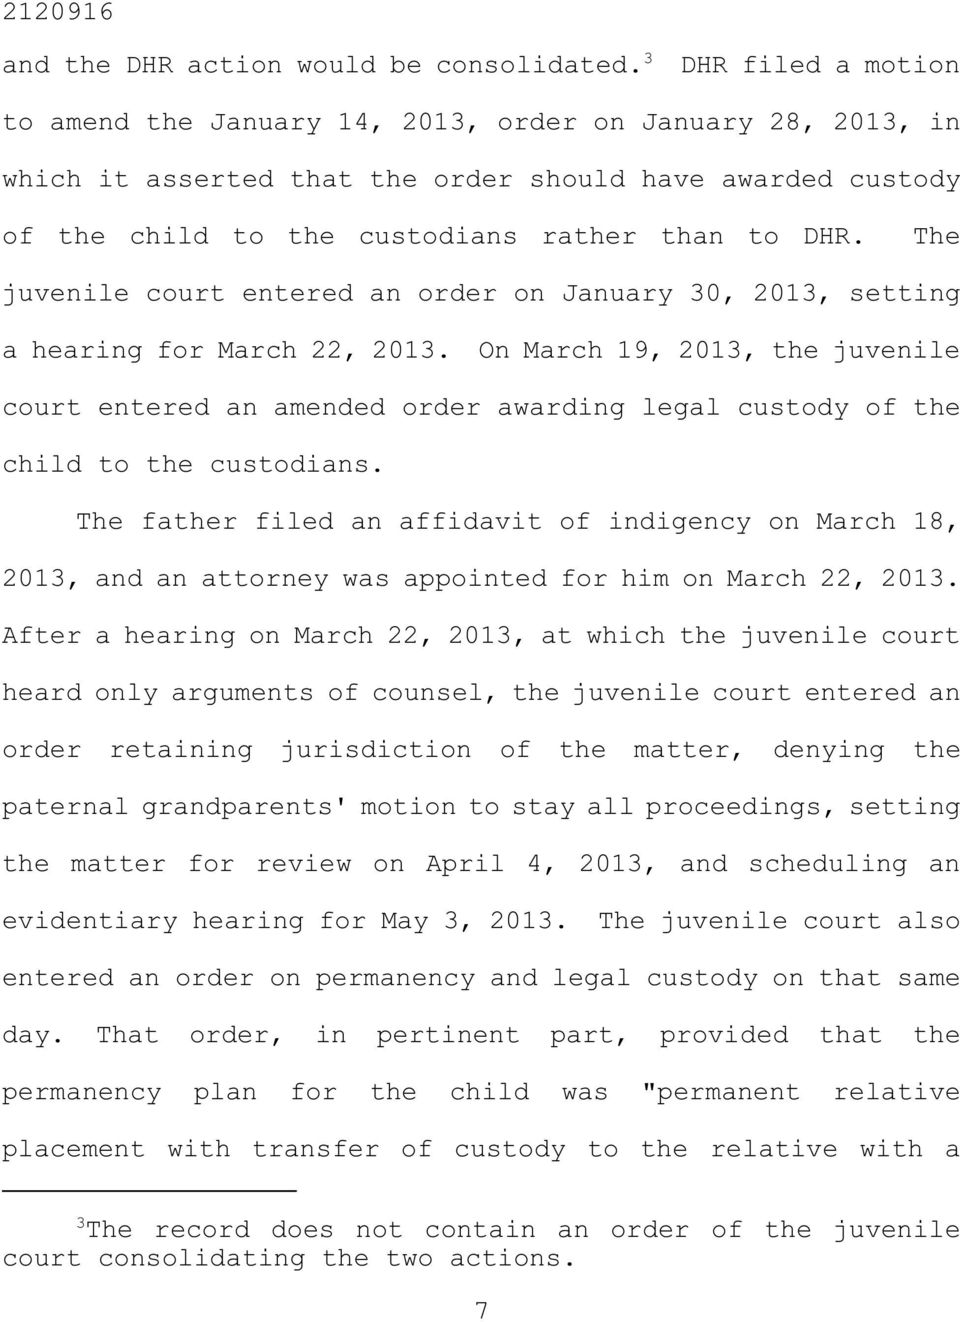 The juvenile court entered an order on January 30, 2013, setting a hearing for March 22, 2013.